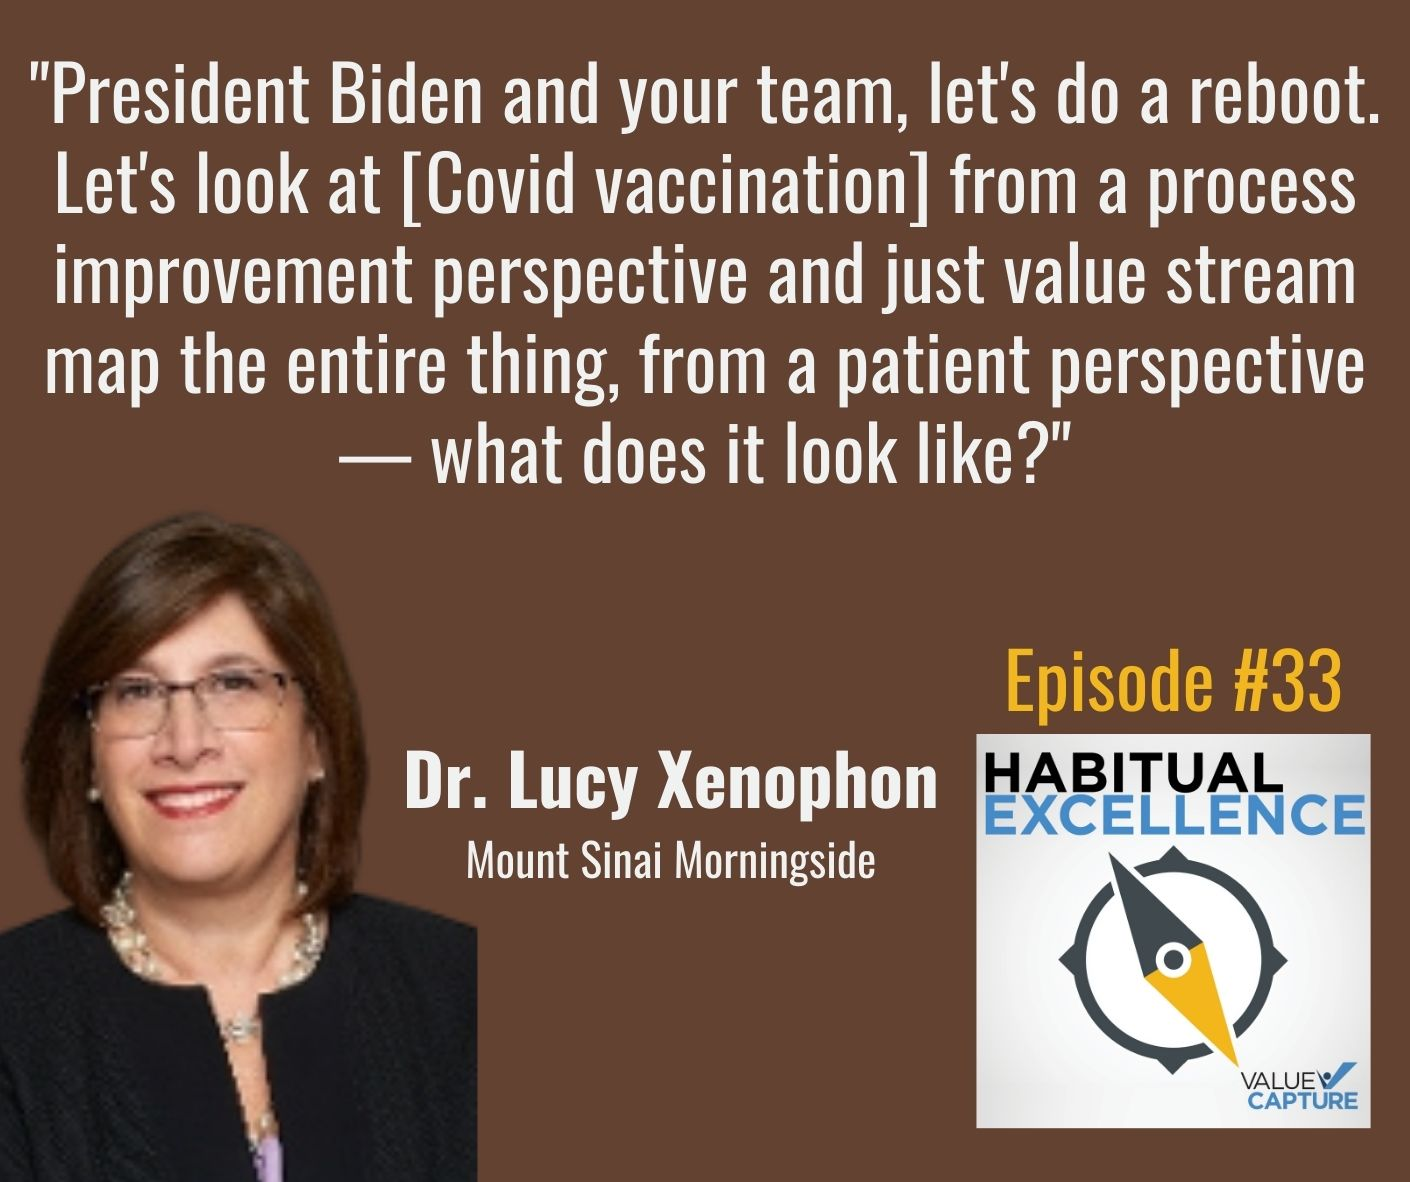 """""""President Biden and your team, let's do a reboot. Let's look at [Covid vaccination] from a process improvement perspective and just value stream map the entire thing, from a patient perspective — what does it look like?"""""""